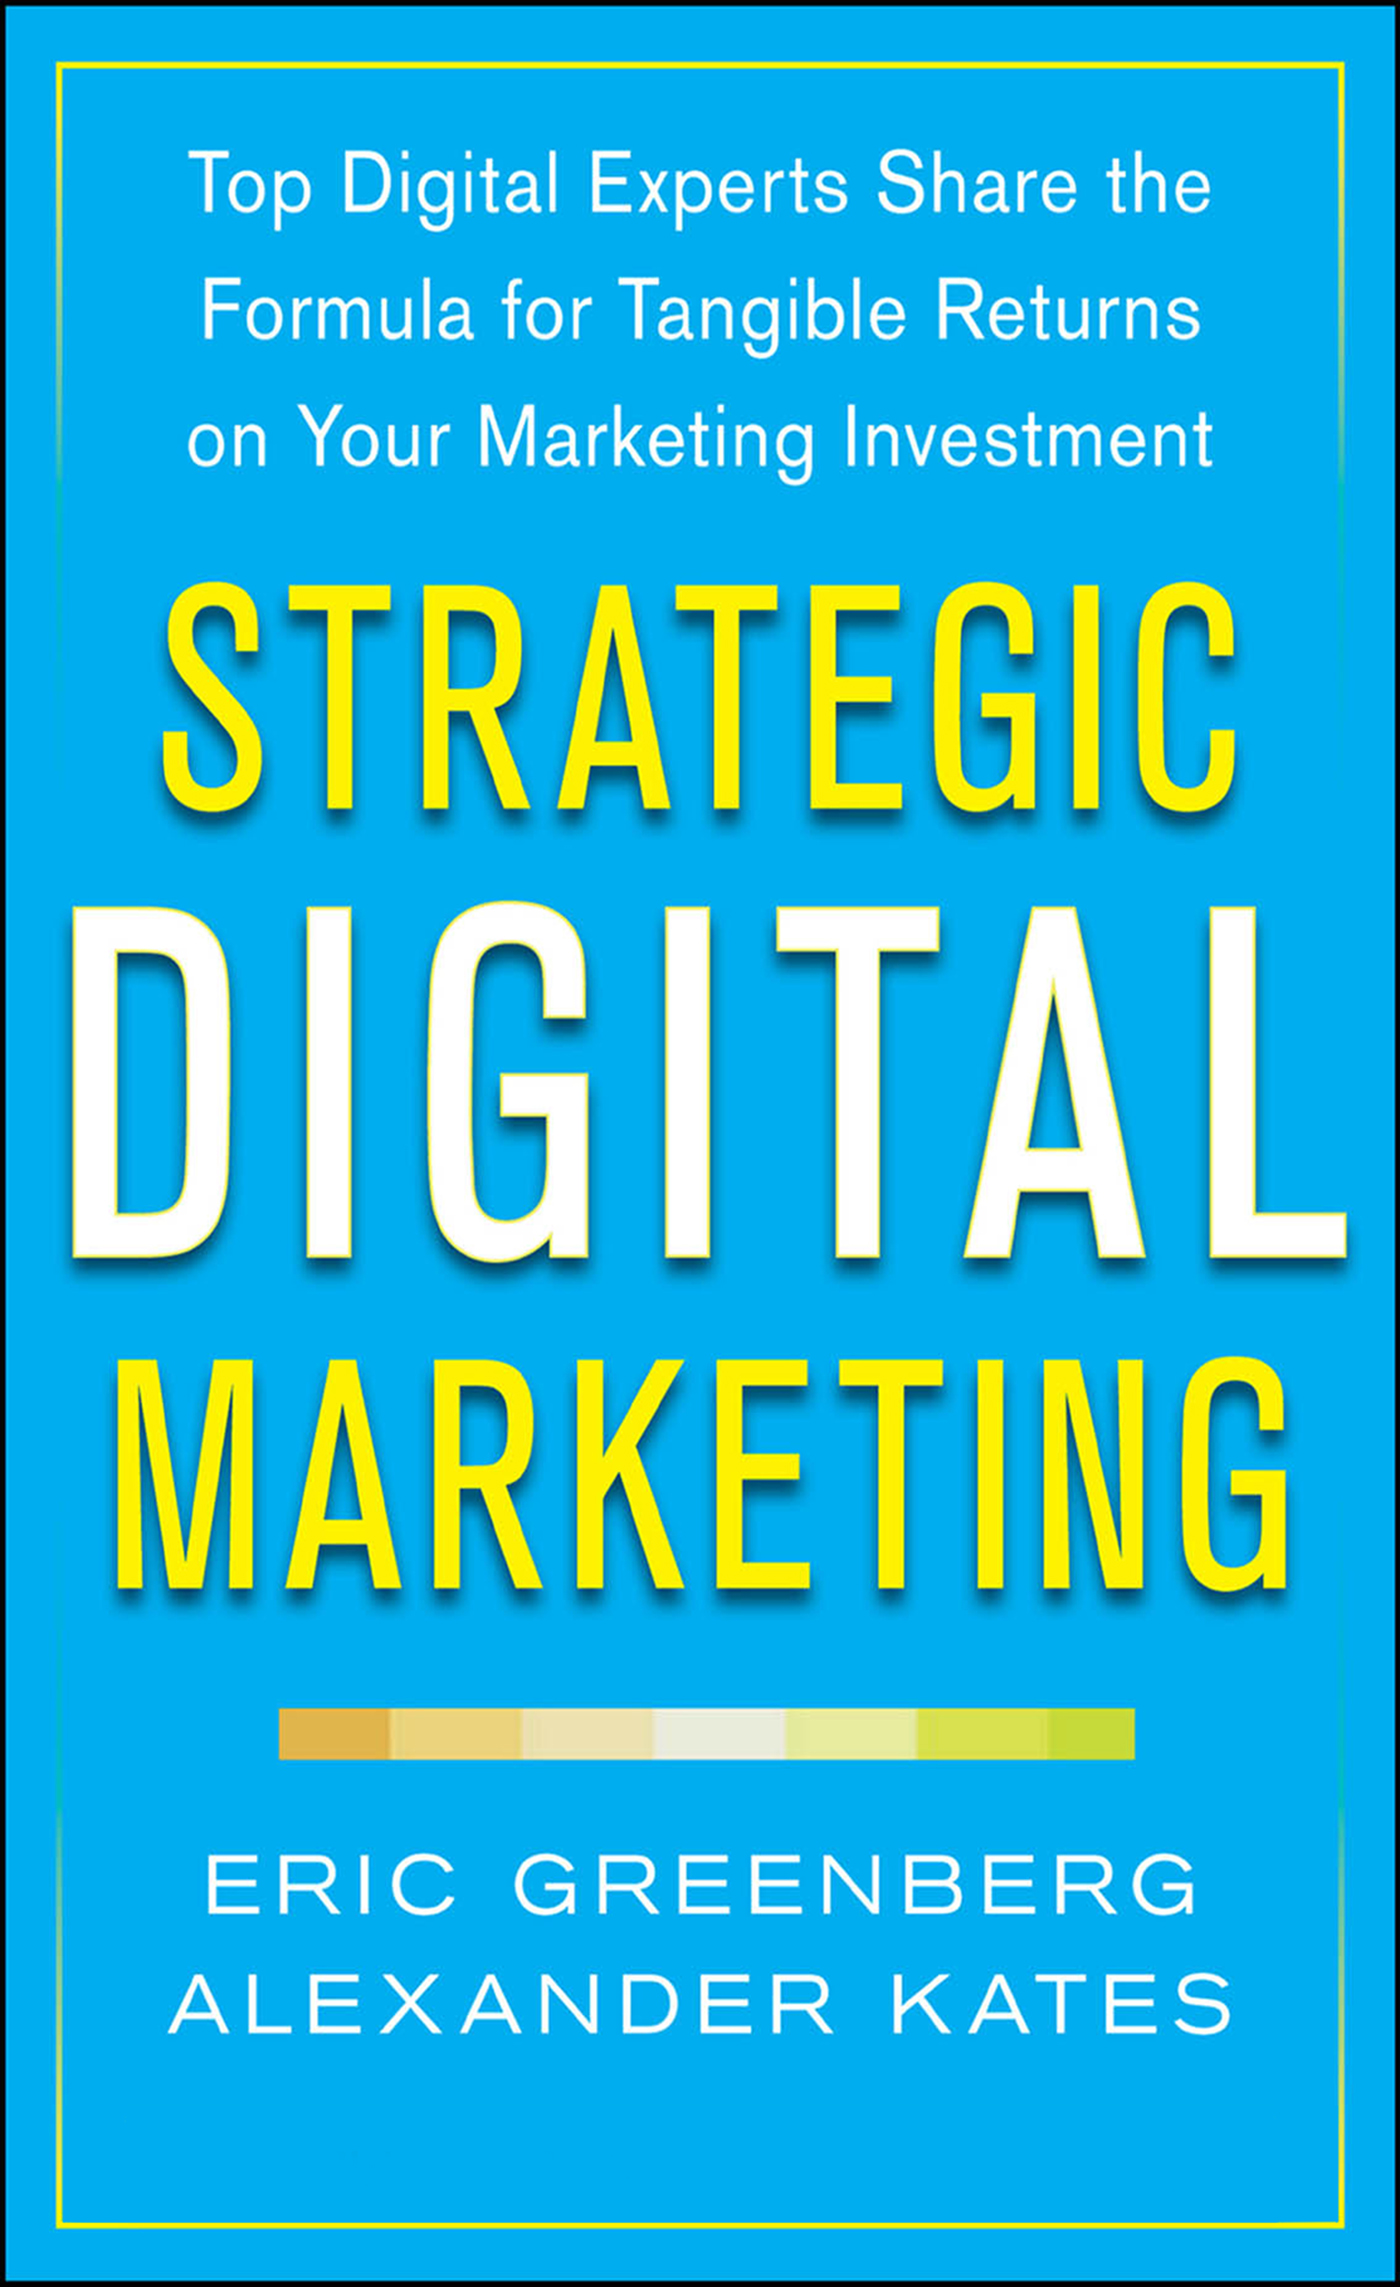 Download Ebook Strategic Digital Marketing: Top Digital Experts Share the Formula for Tangible Returns on Your Marketing Investment by Eric Greenberg Pdf